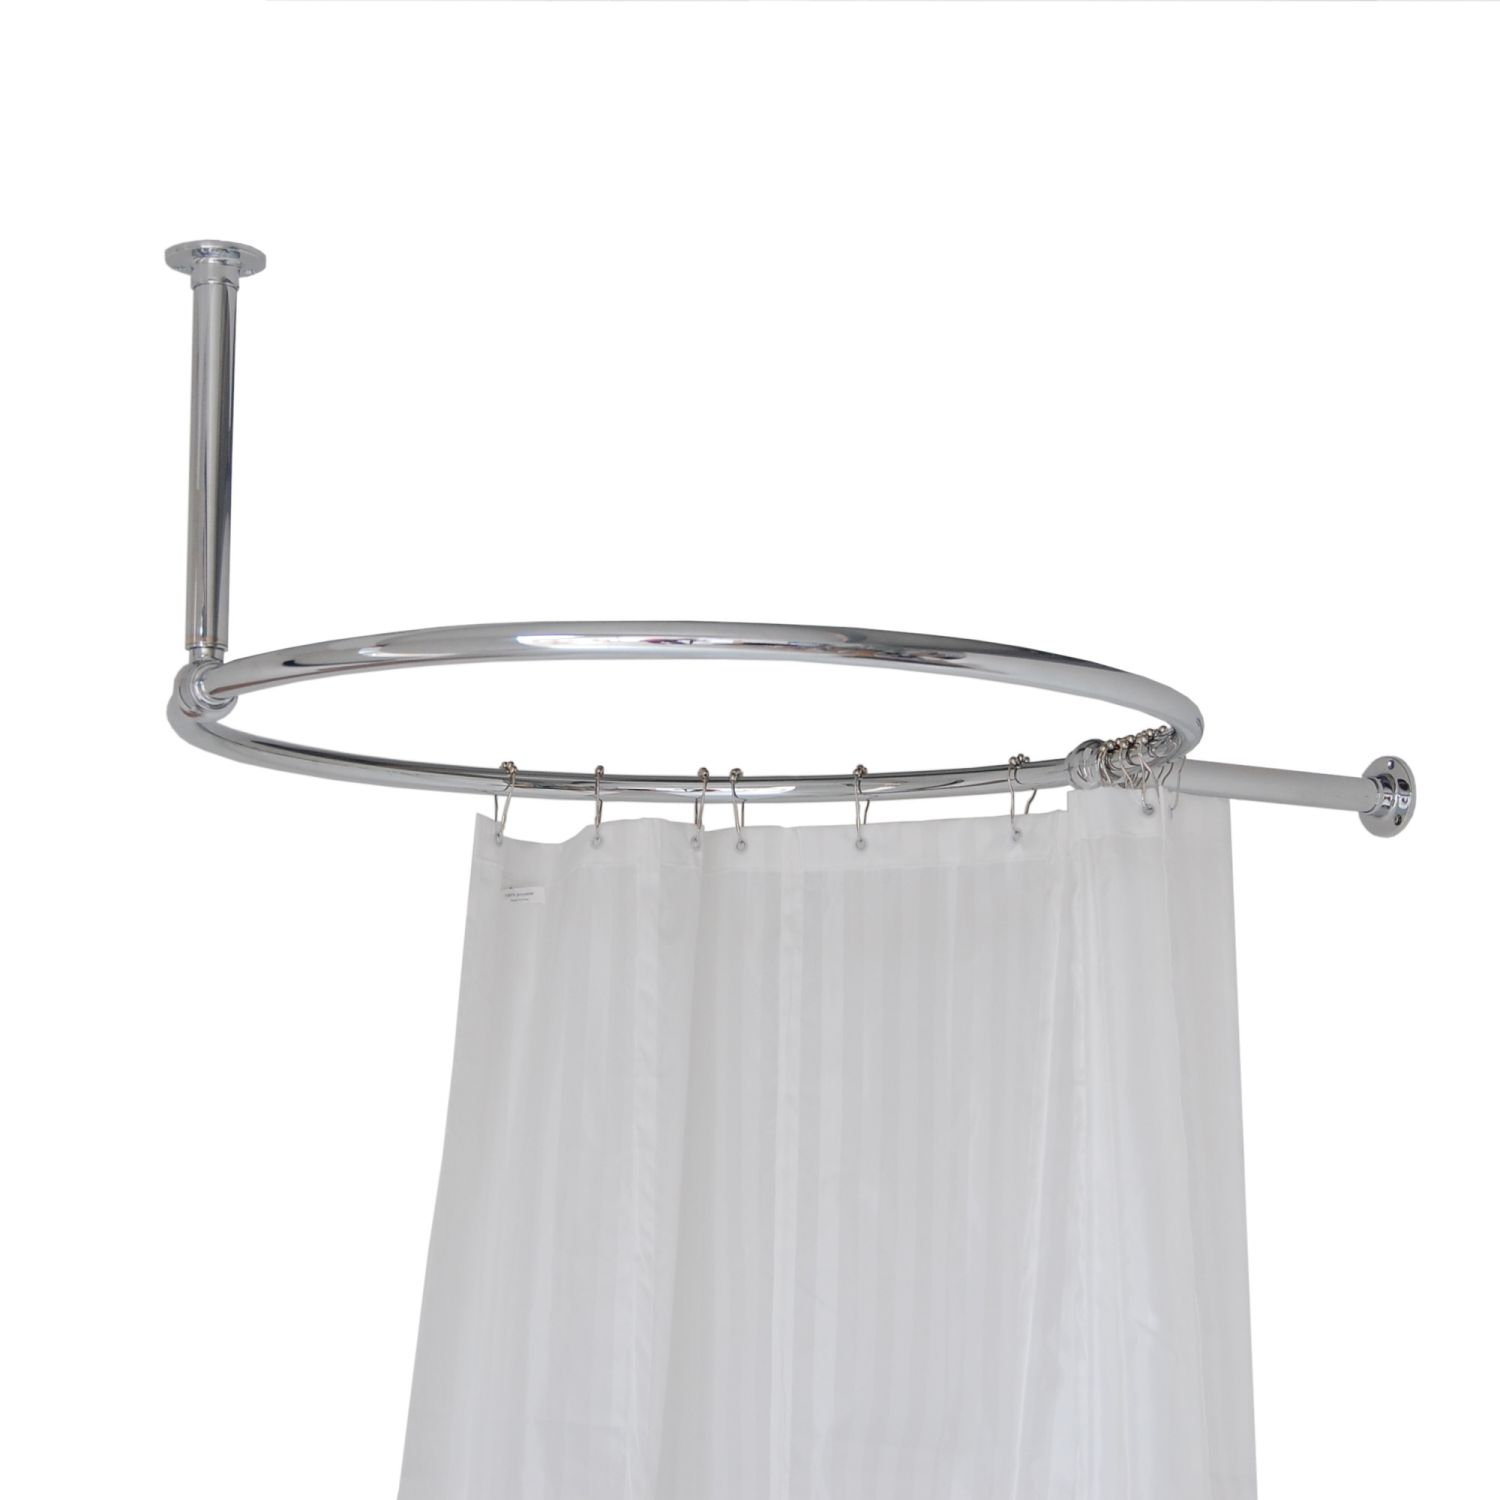 Traditional Round Chrome 850mm Shower Curtain Rail